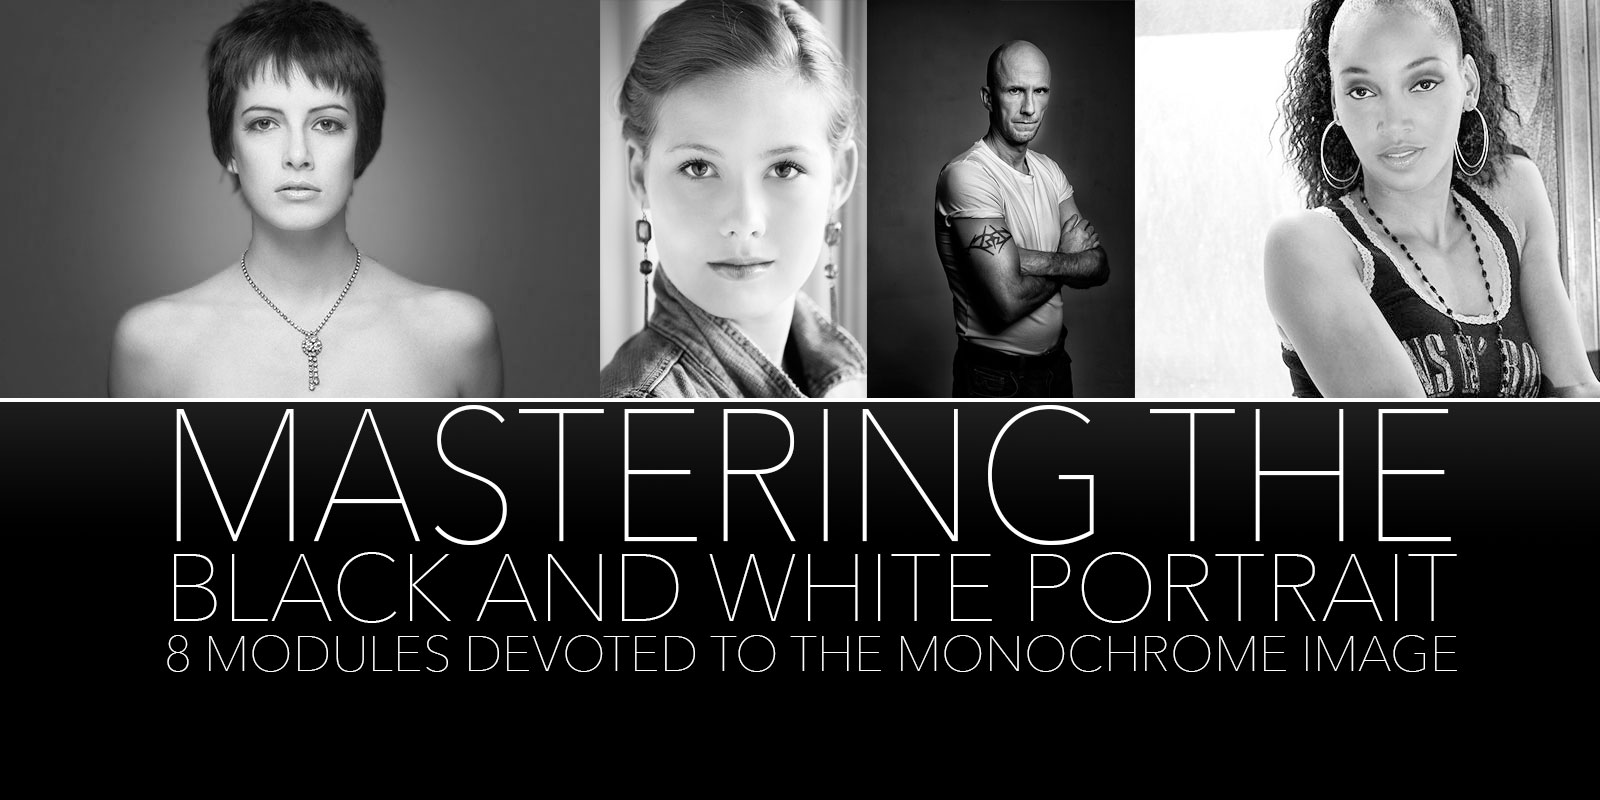 Mastering the black and white portrait essentials for photographers